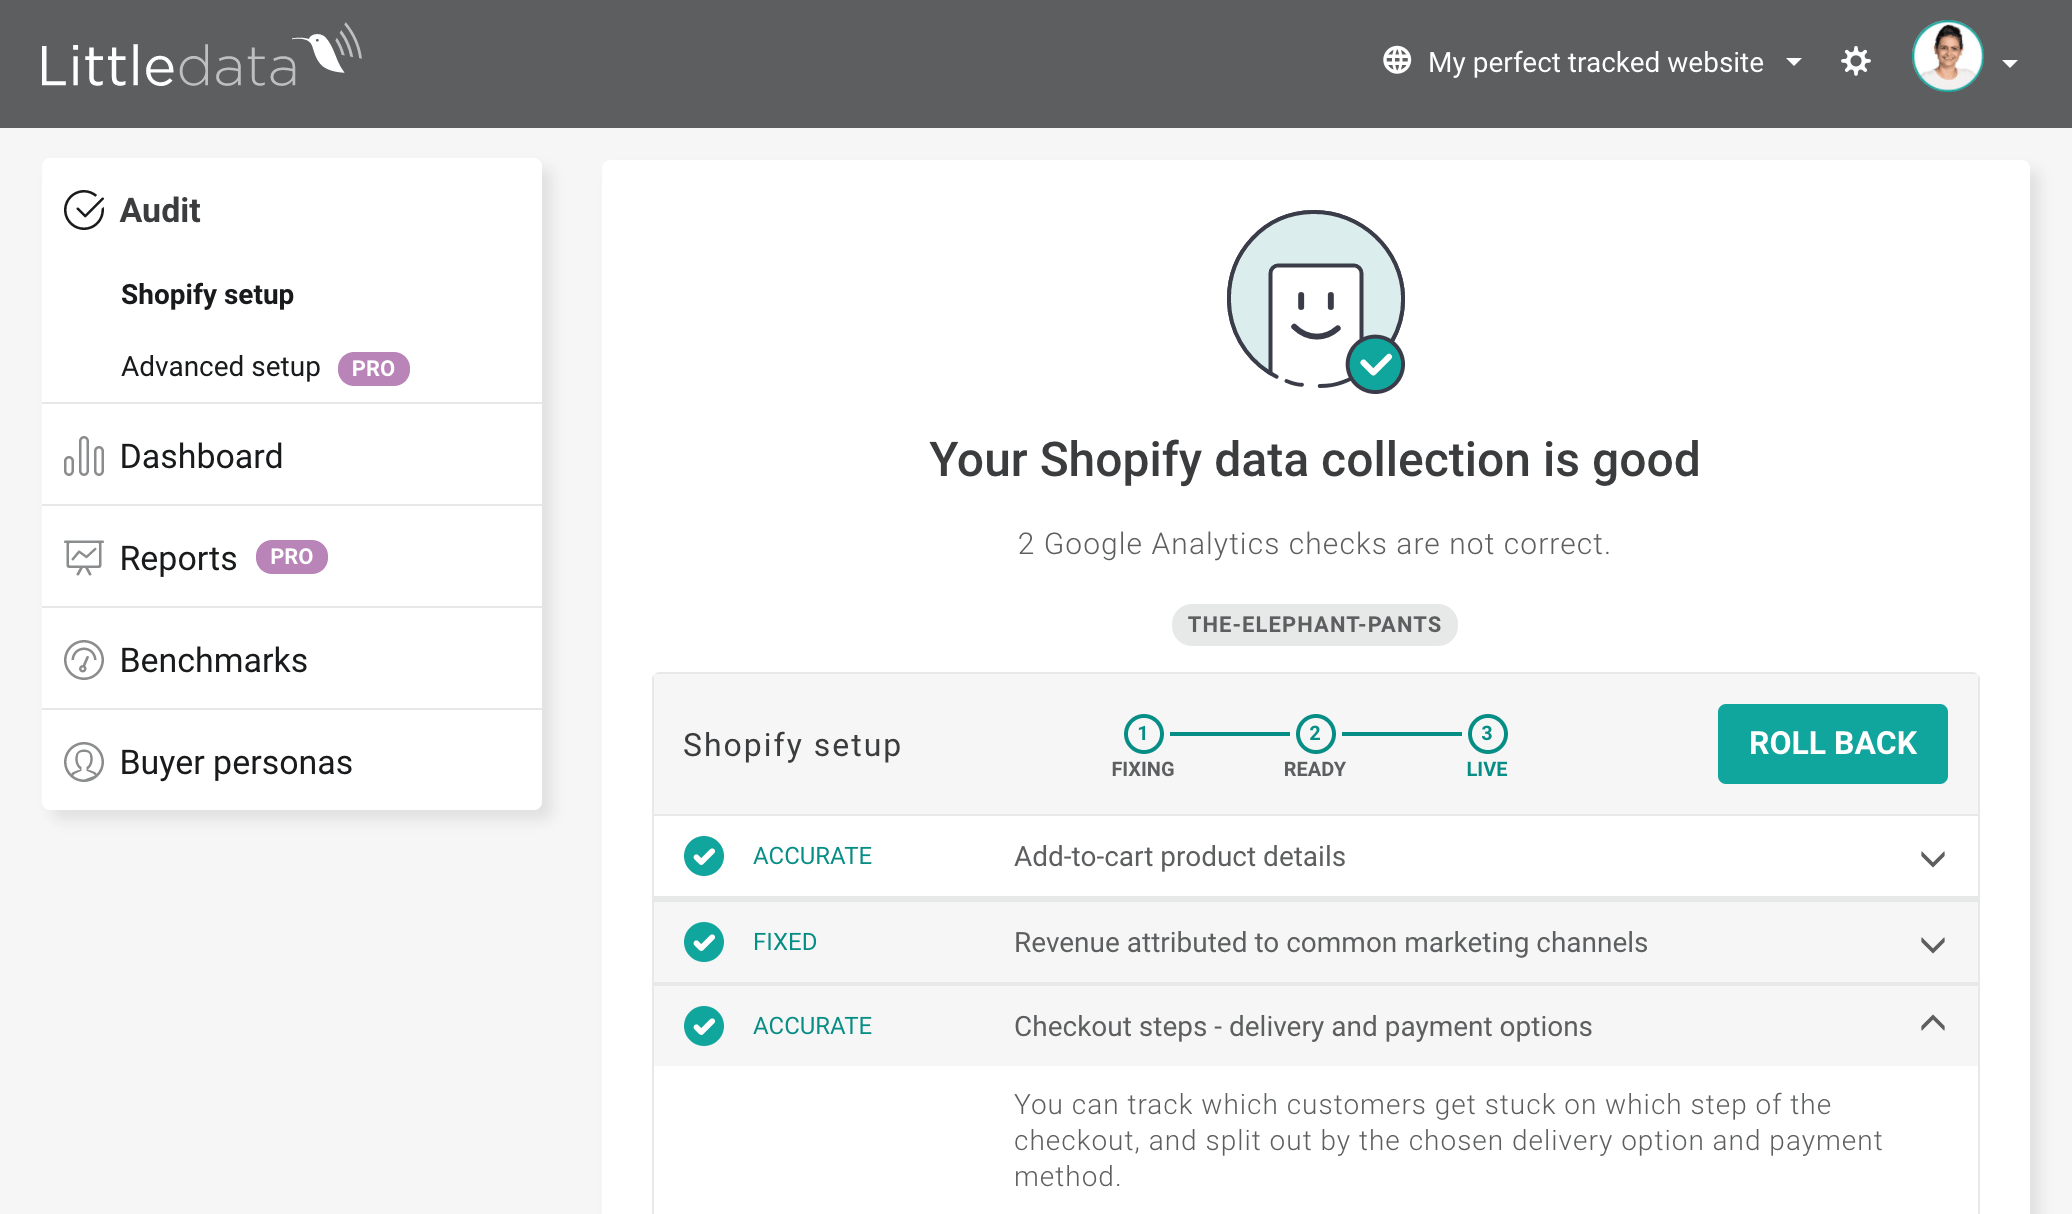 Checkout tracking for Shopify stores